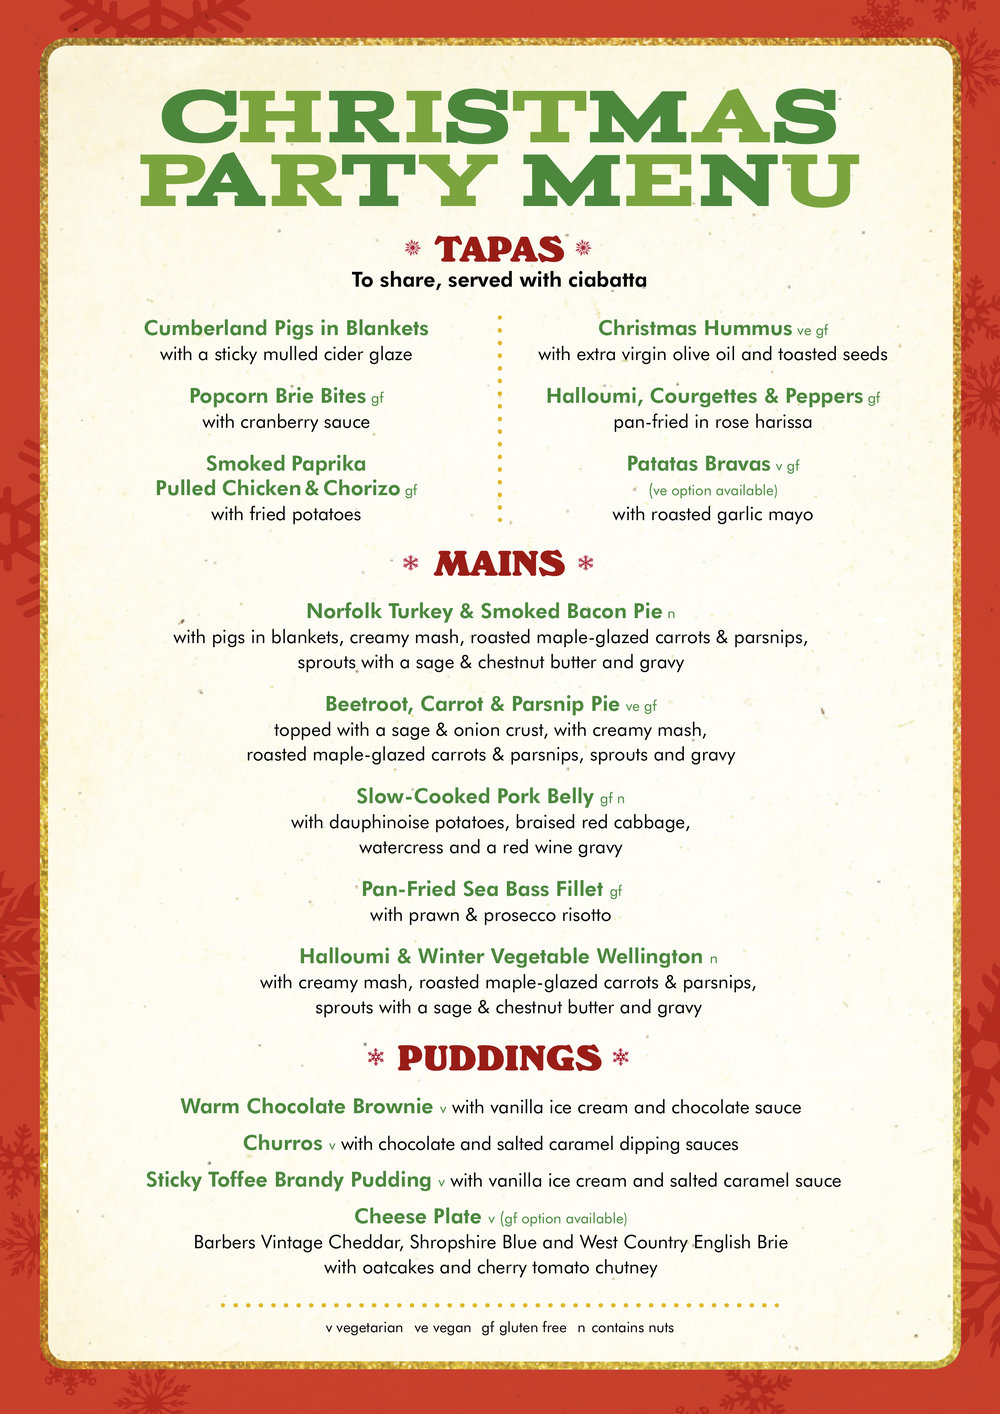 Christmas Party Menu.jpg